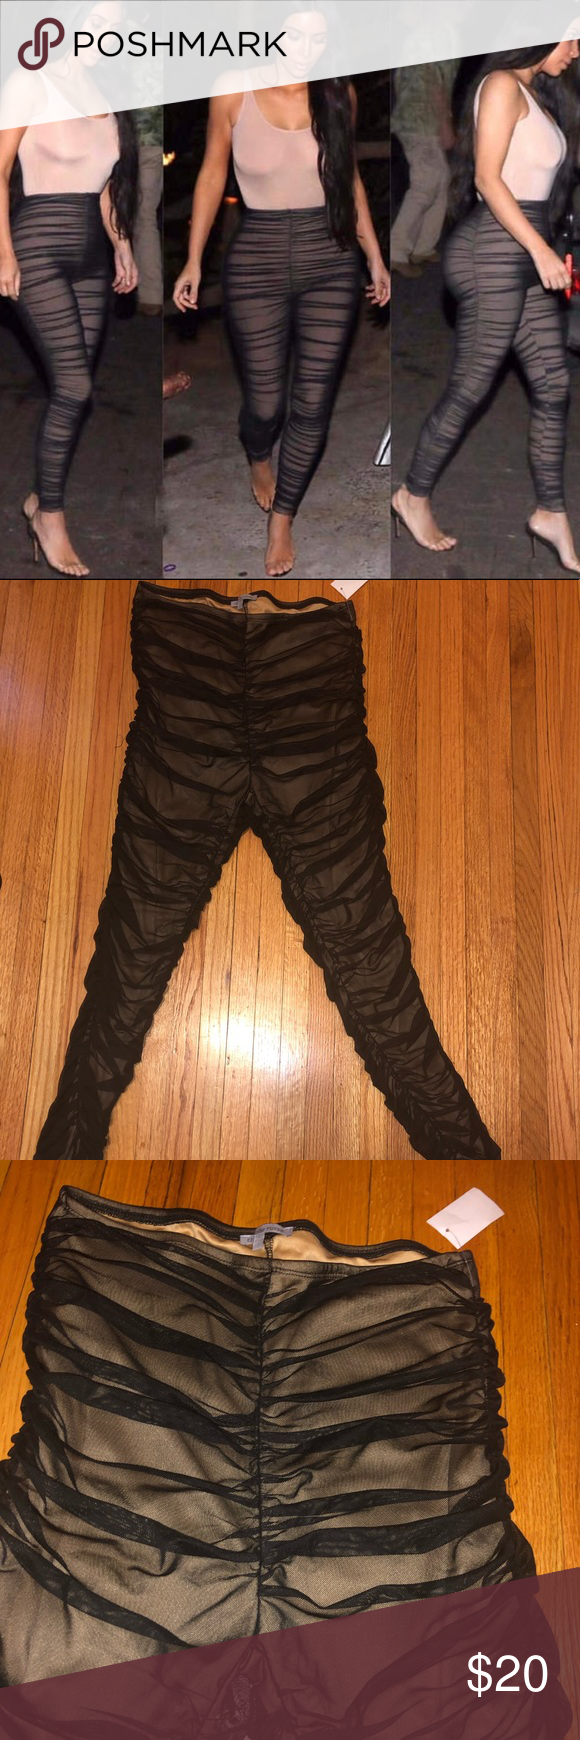 6e0717cac8f2df Black/Nude Mesh Ruched Leggings Nice dupe. Fits like Juniors L. NWT  Charlotte